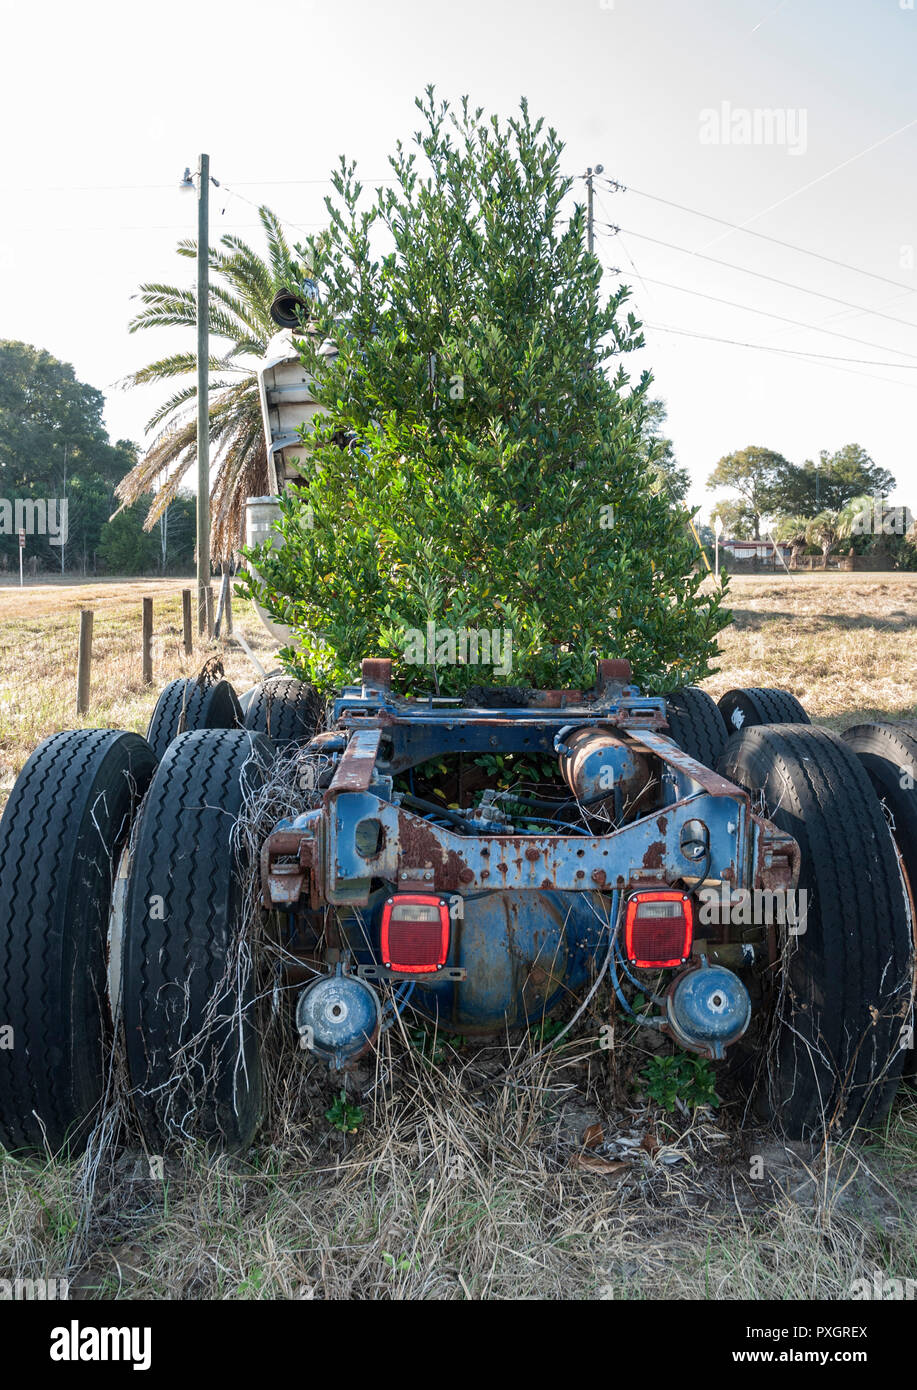 Abandoned 18 wheel truck with tree growing in the middle. - Stock Image